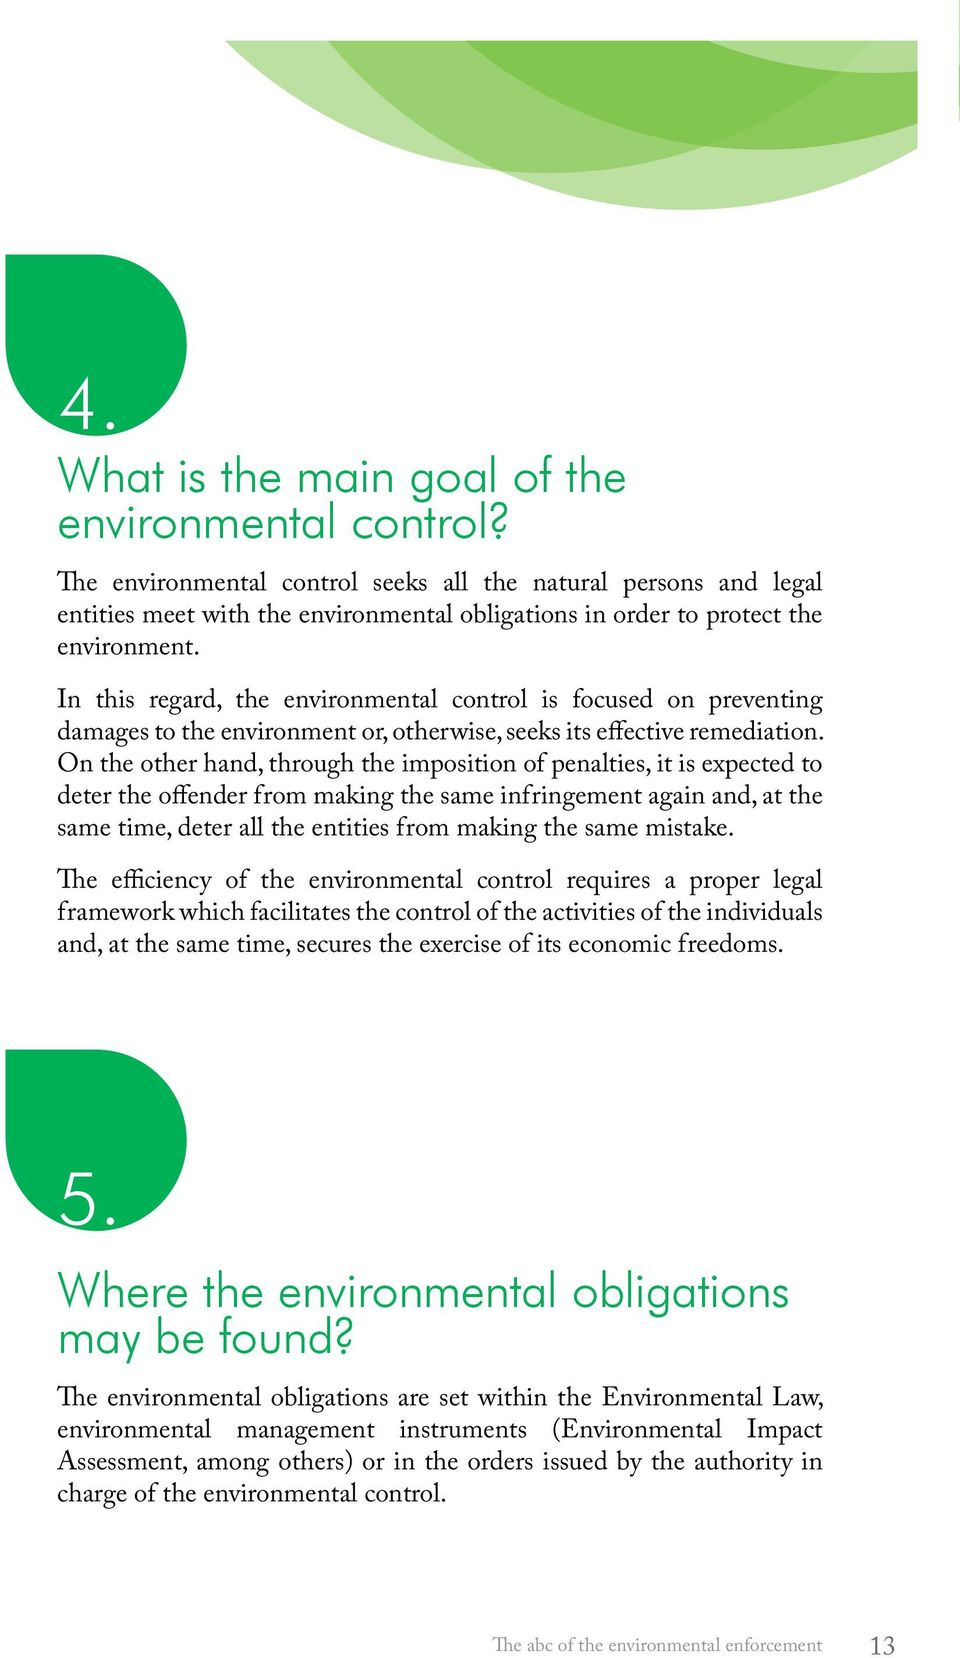 In this regard, the environmental control is focused on preventing damages to the environment or, otherwise, seeks its effective remediation.